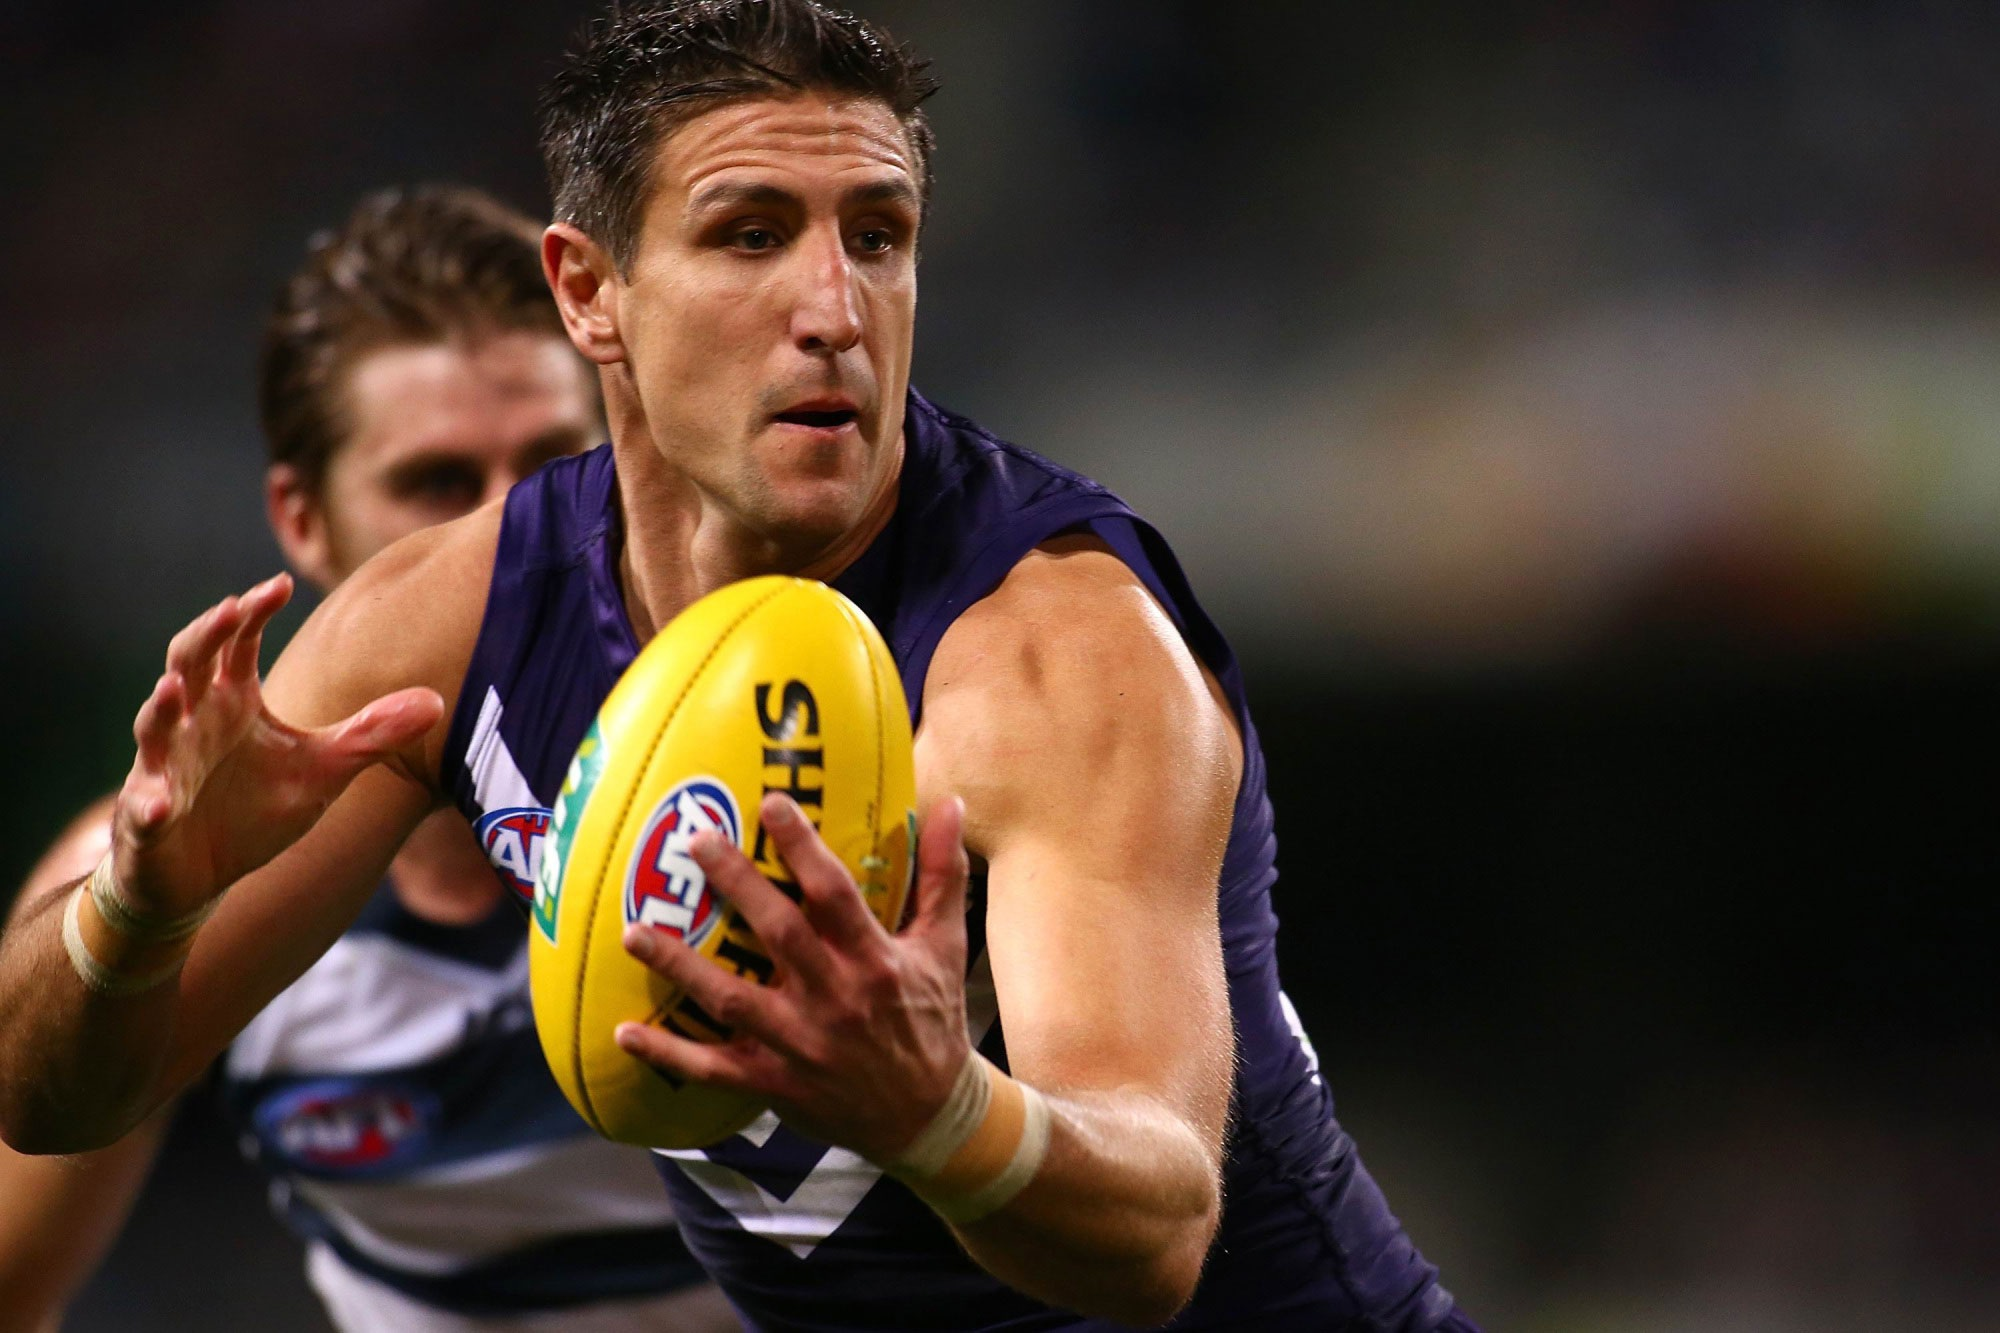 Matthew Pavlich: A hero for all.